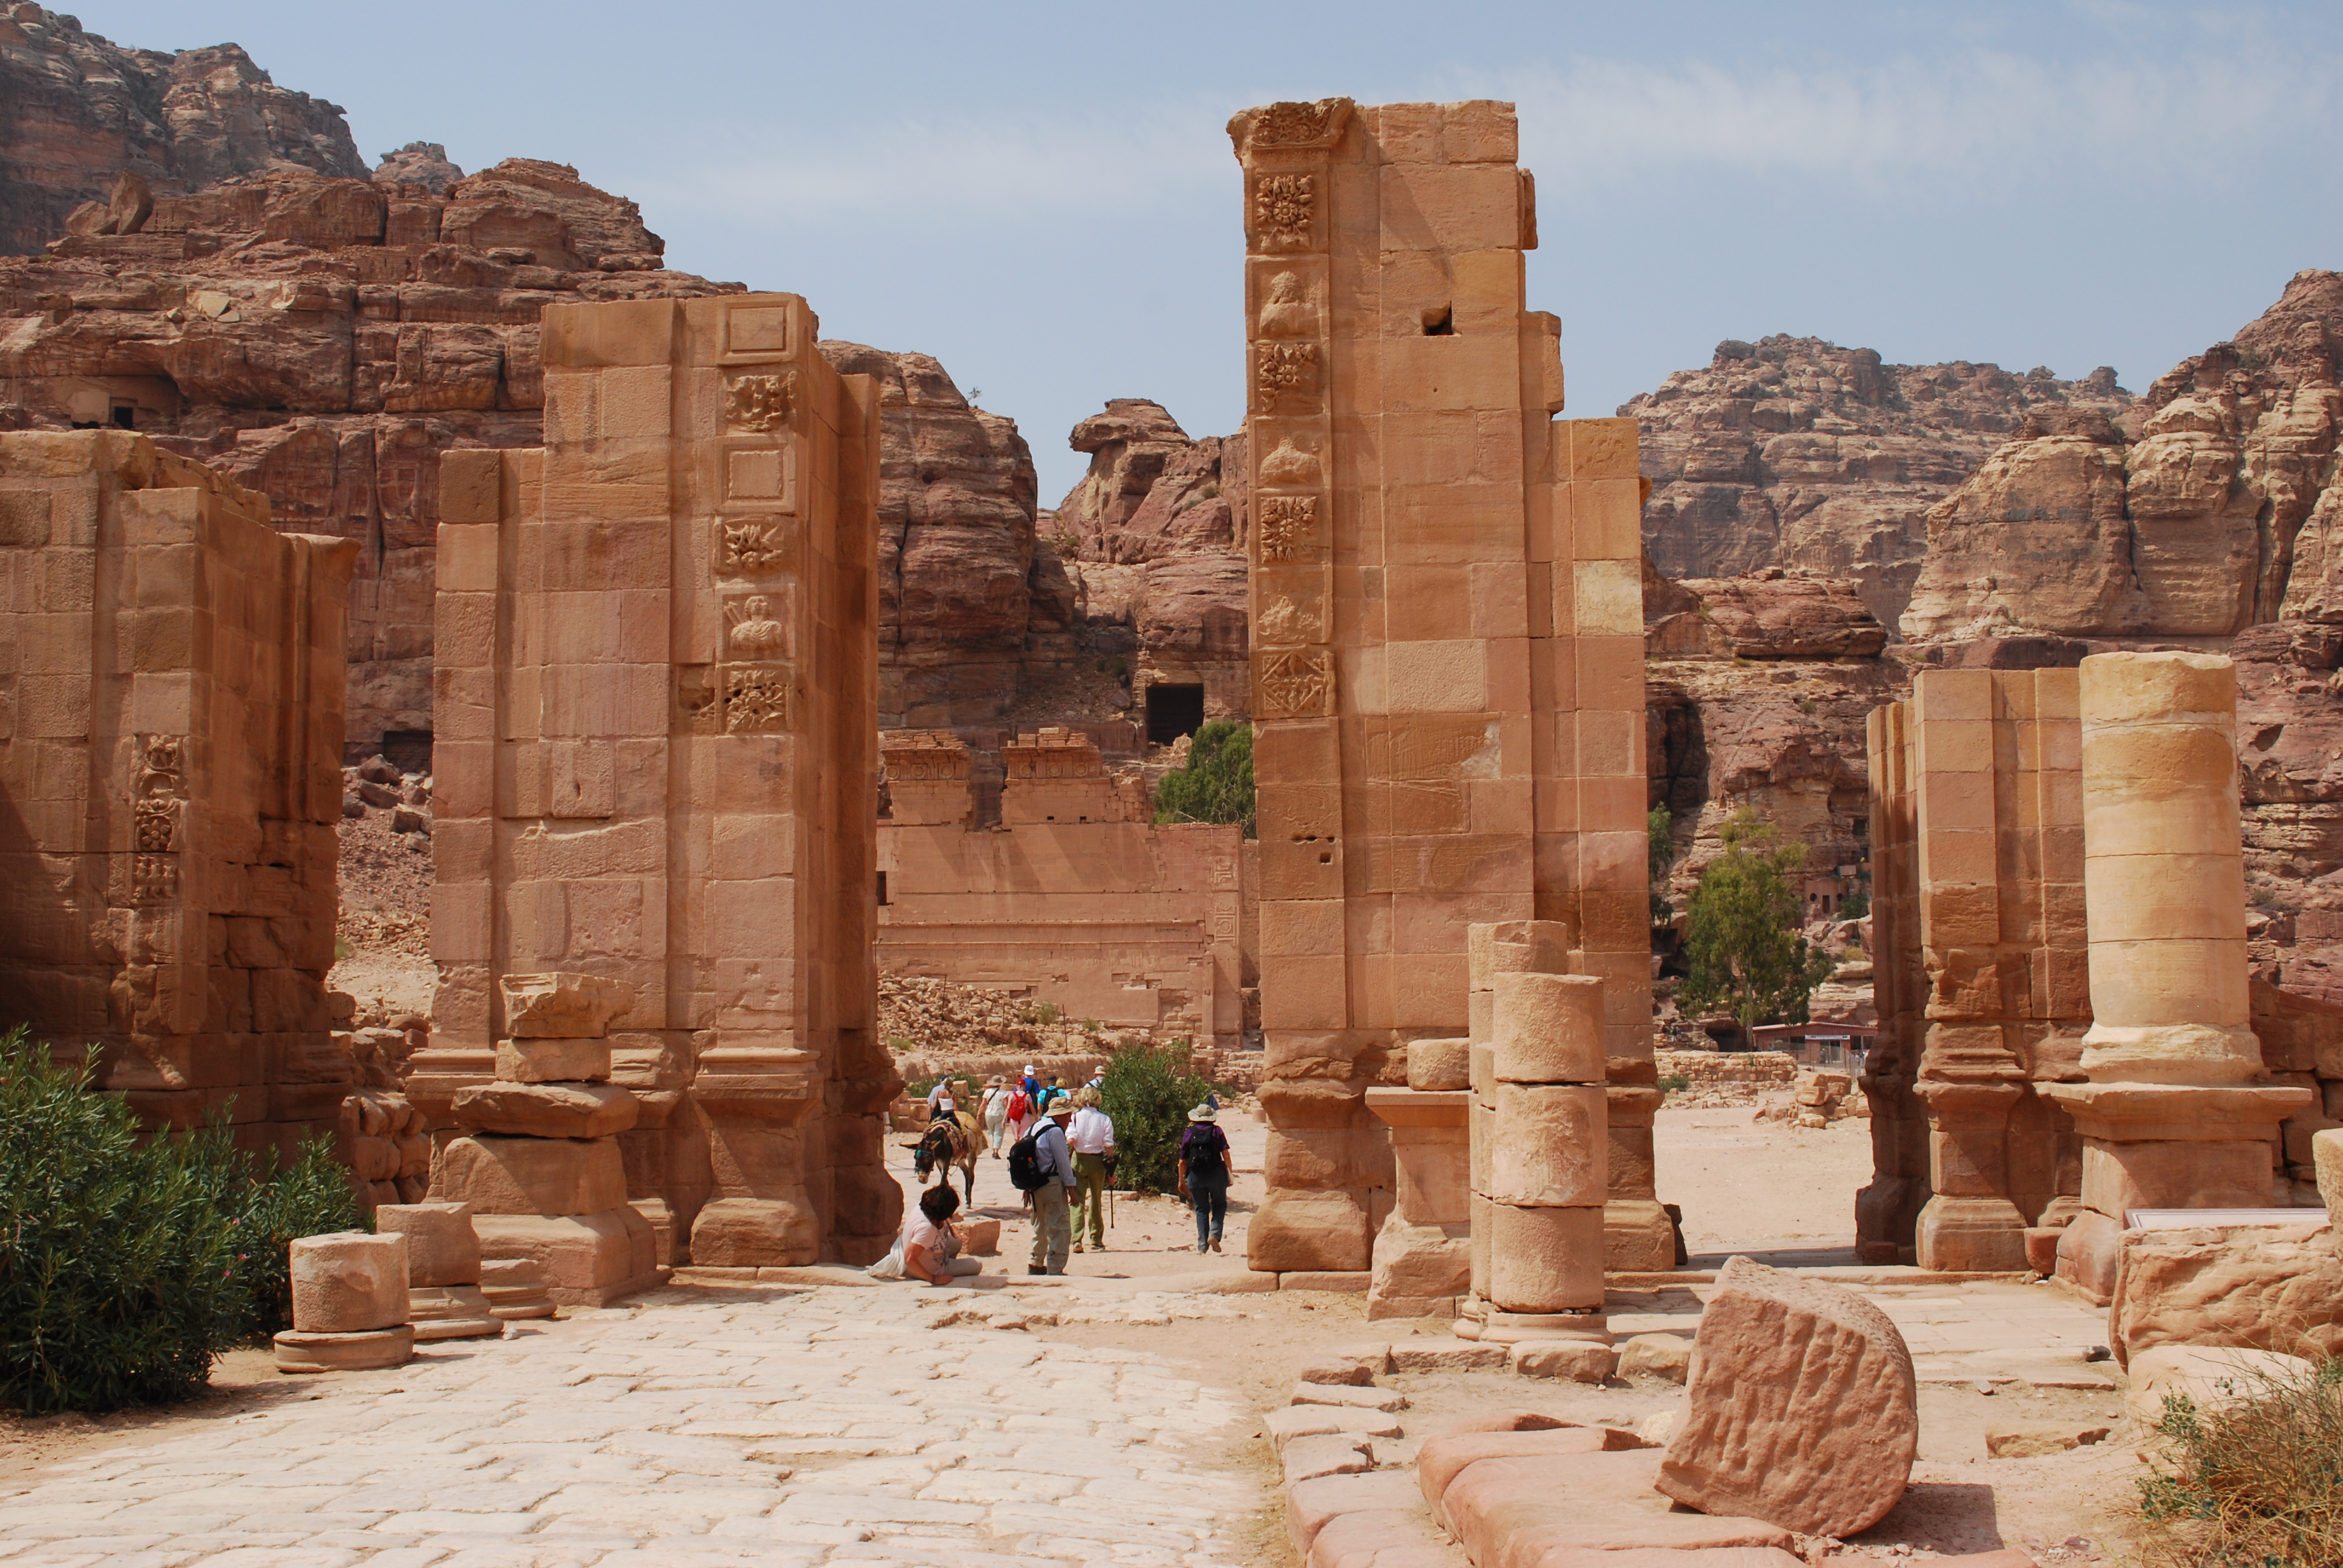 petra rose red city half as old as time 22 pics. Black Bedroom Furniture Sets. Home Design Ideas